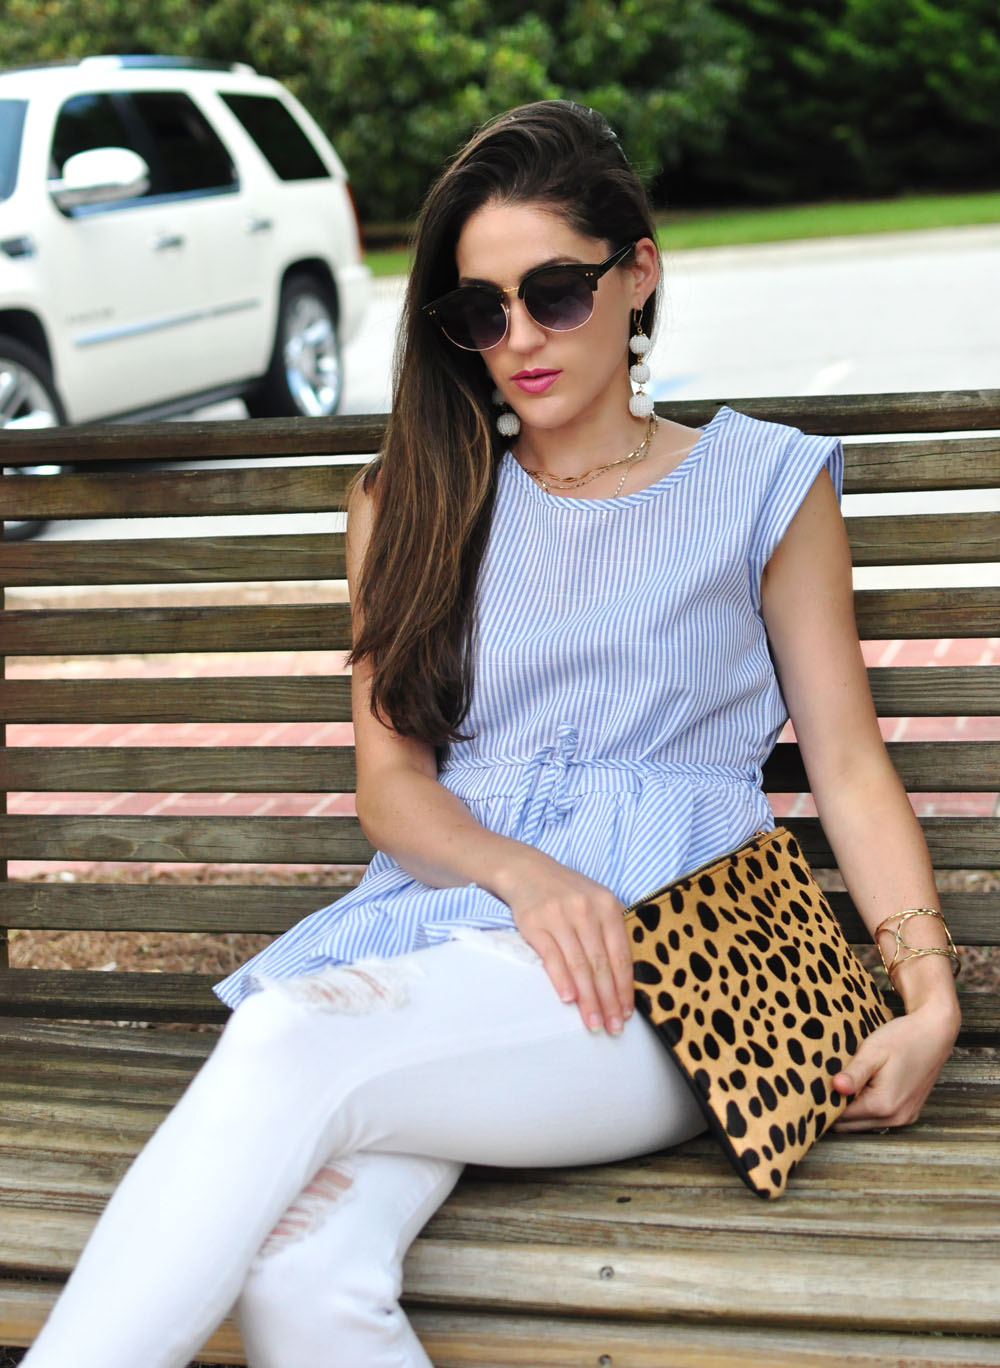 Animal Print Clutch - Nordstrom - worn by Style Blogger Erica Valentin